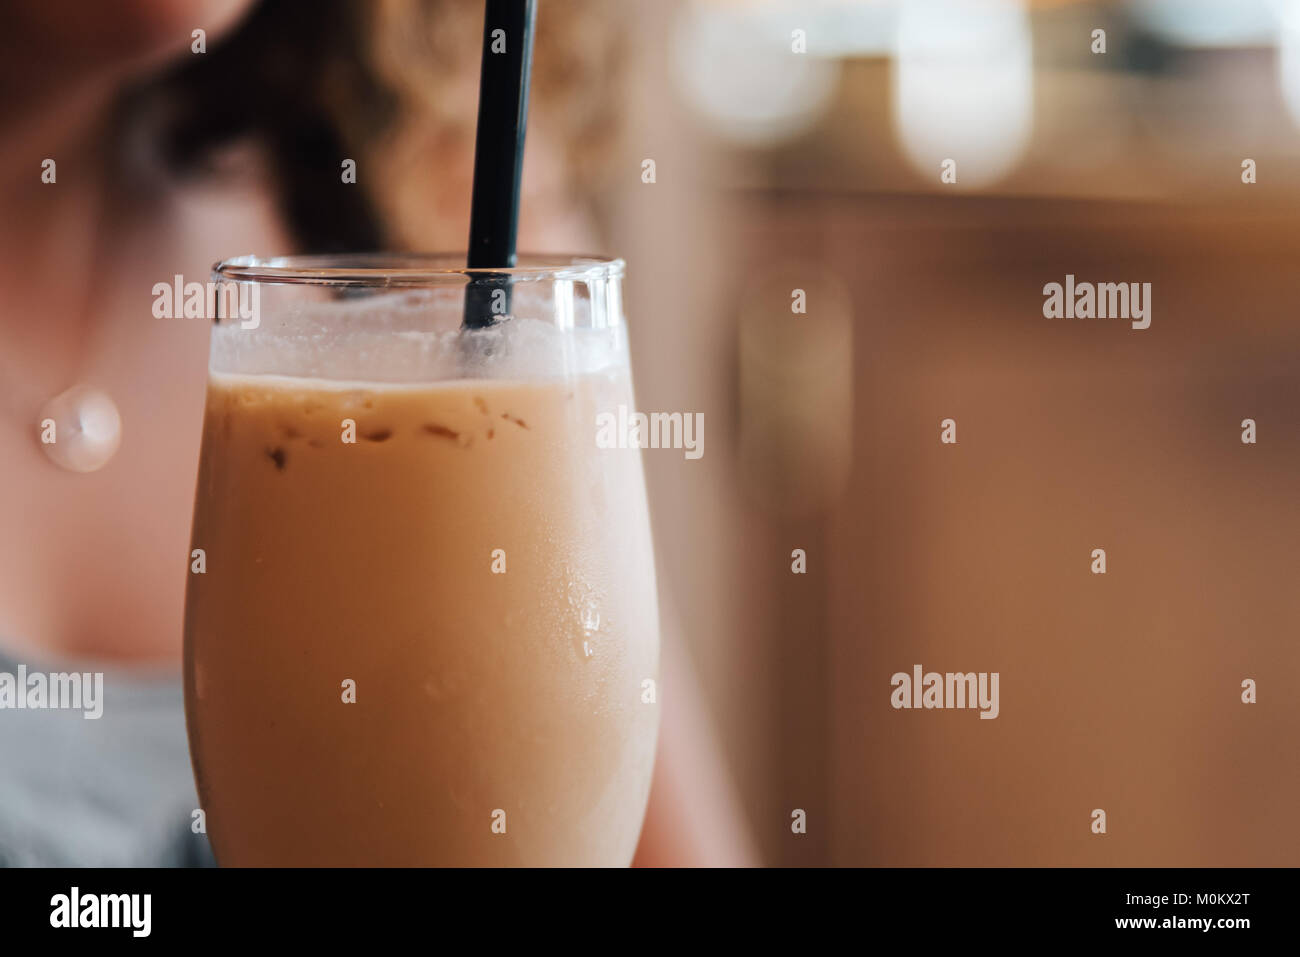 Close up of Girl Drinking a Milkshake with Space for Copy. Focus on milkshake - Stock Image